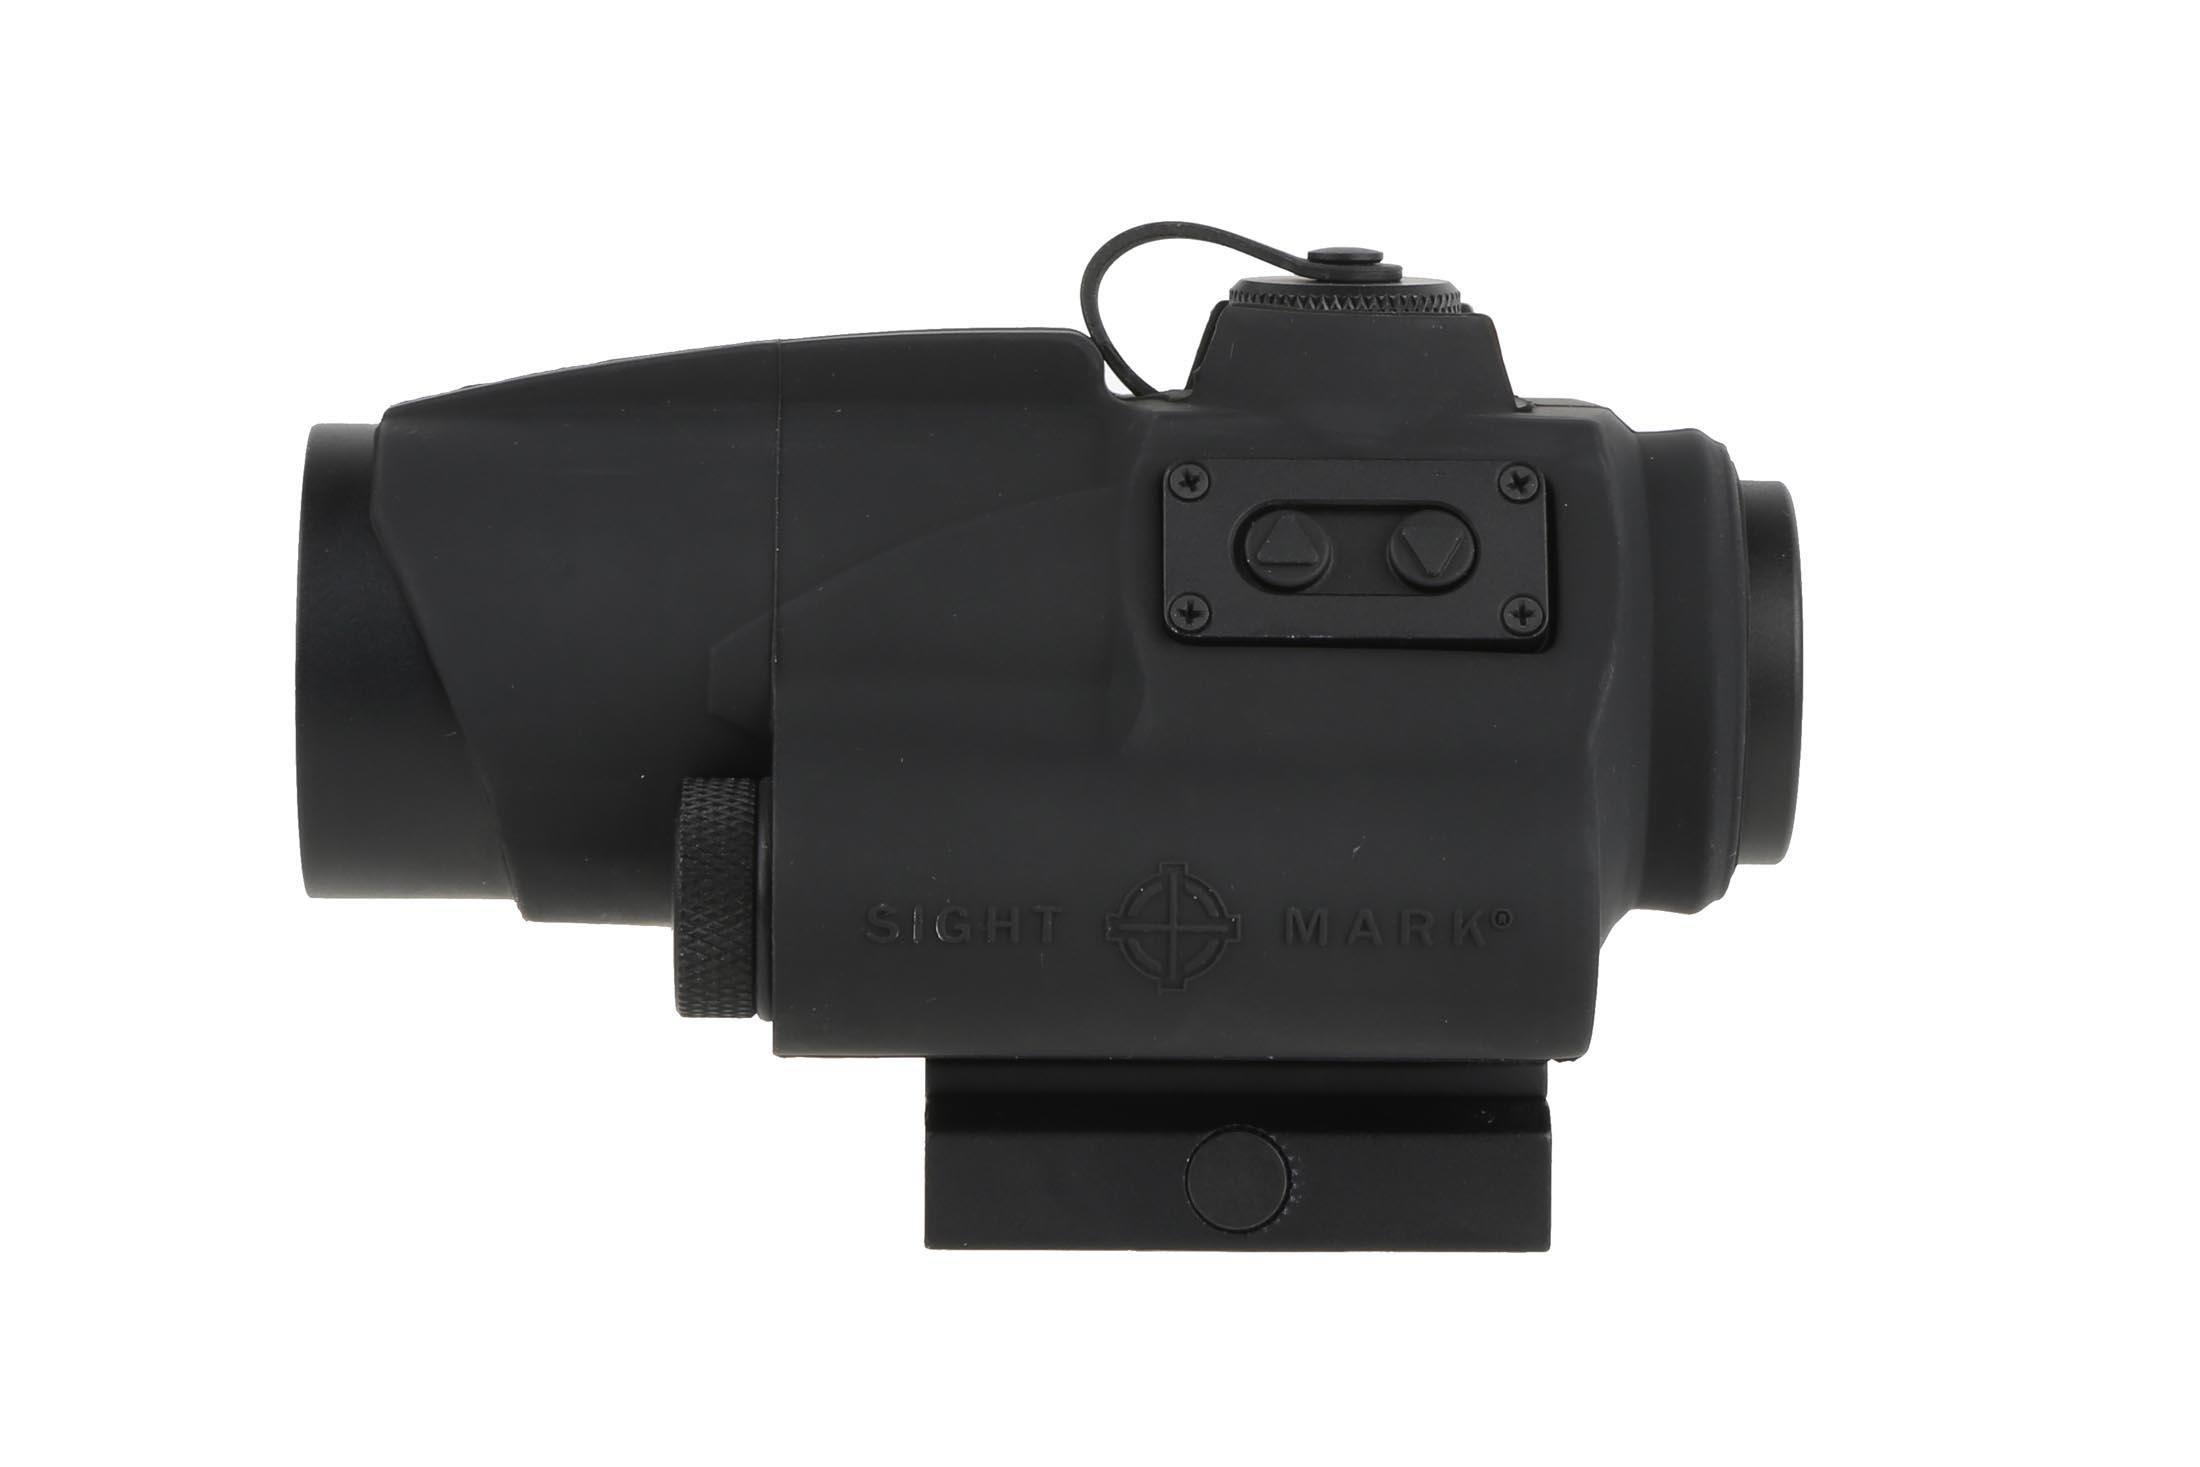 This AR15 red dot sight is made by Sightmark and is waterproof and shockproof